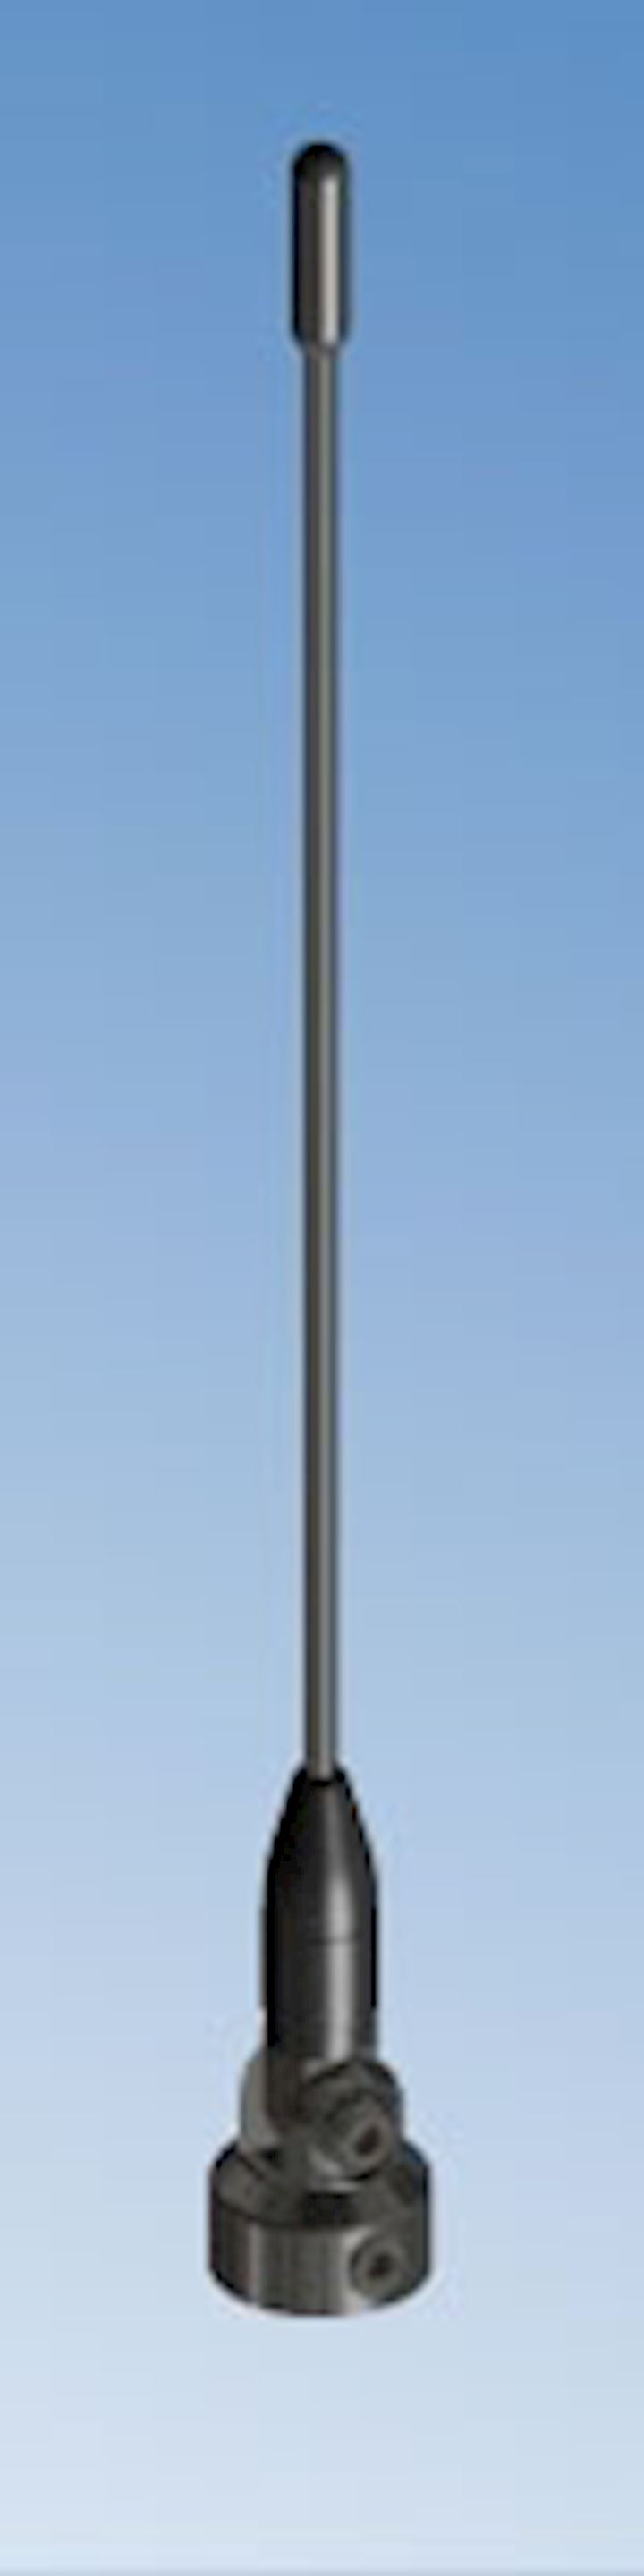 Tetra Antenna 1/4 Wave Hinged